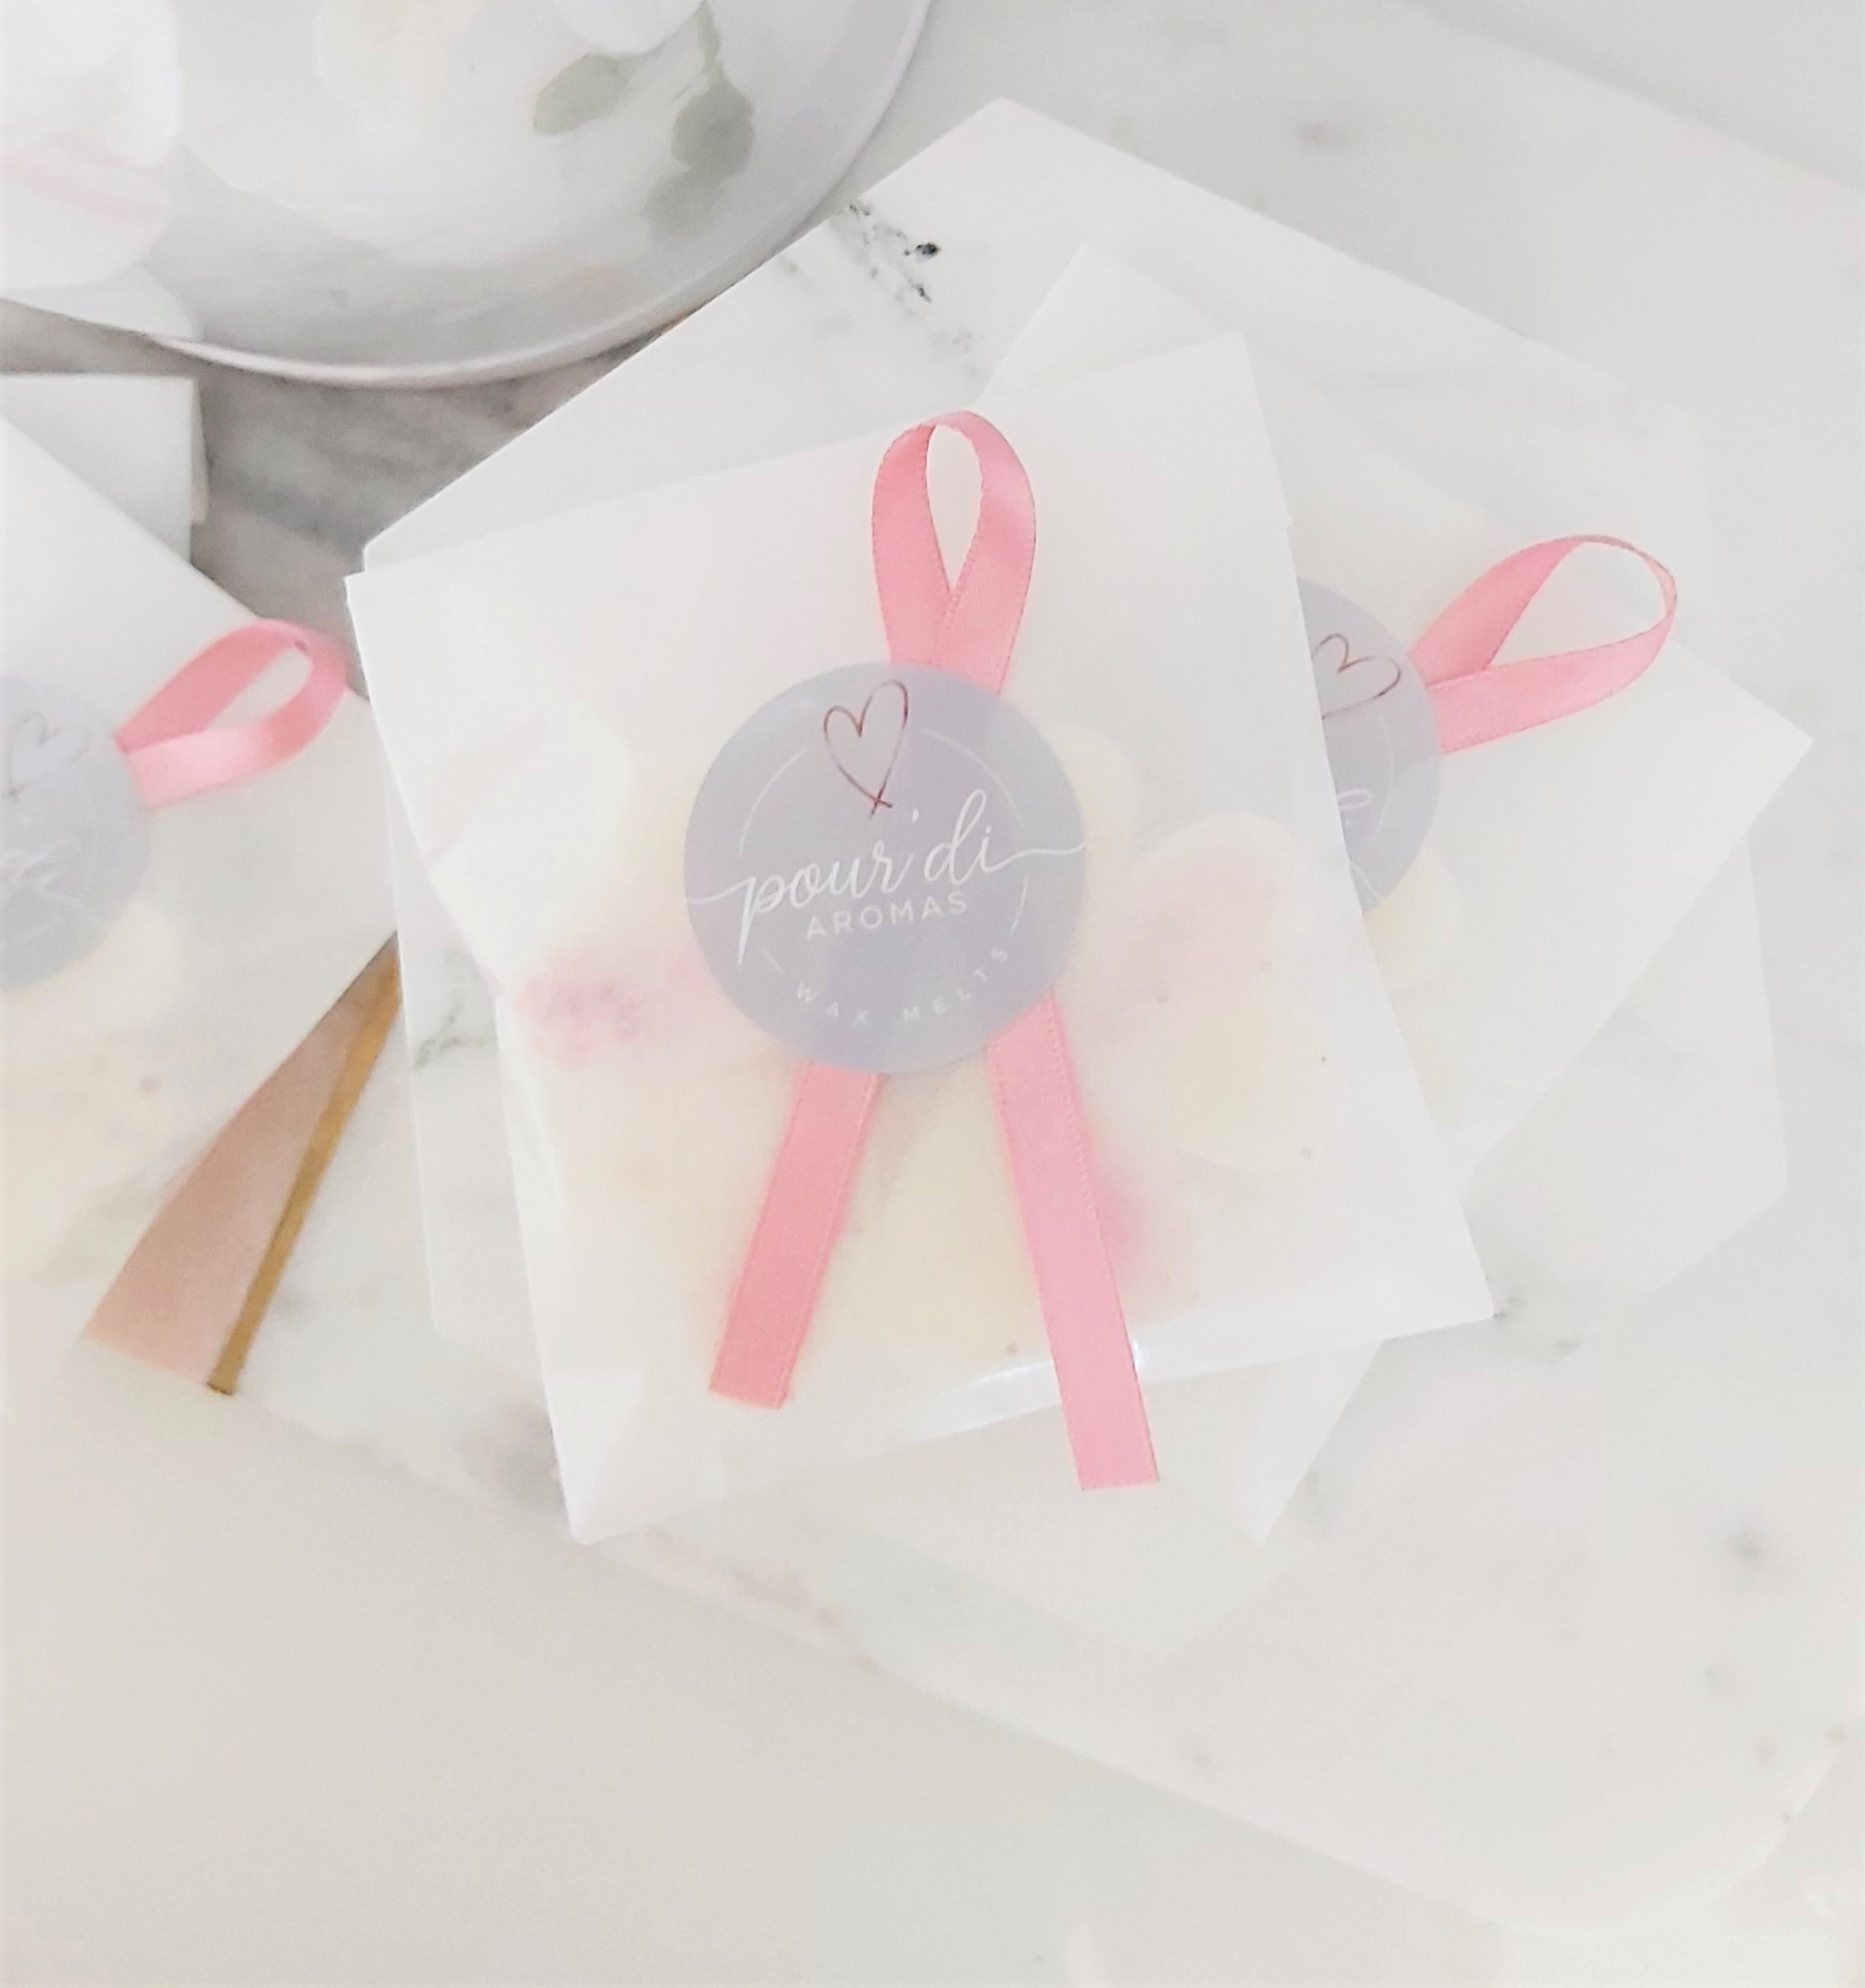 Perfume Collection Wax Melts